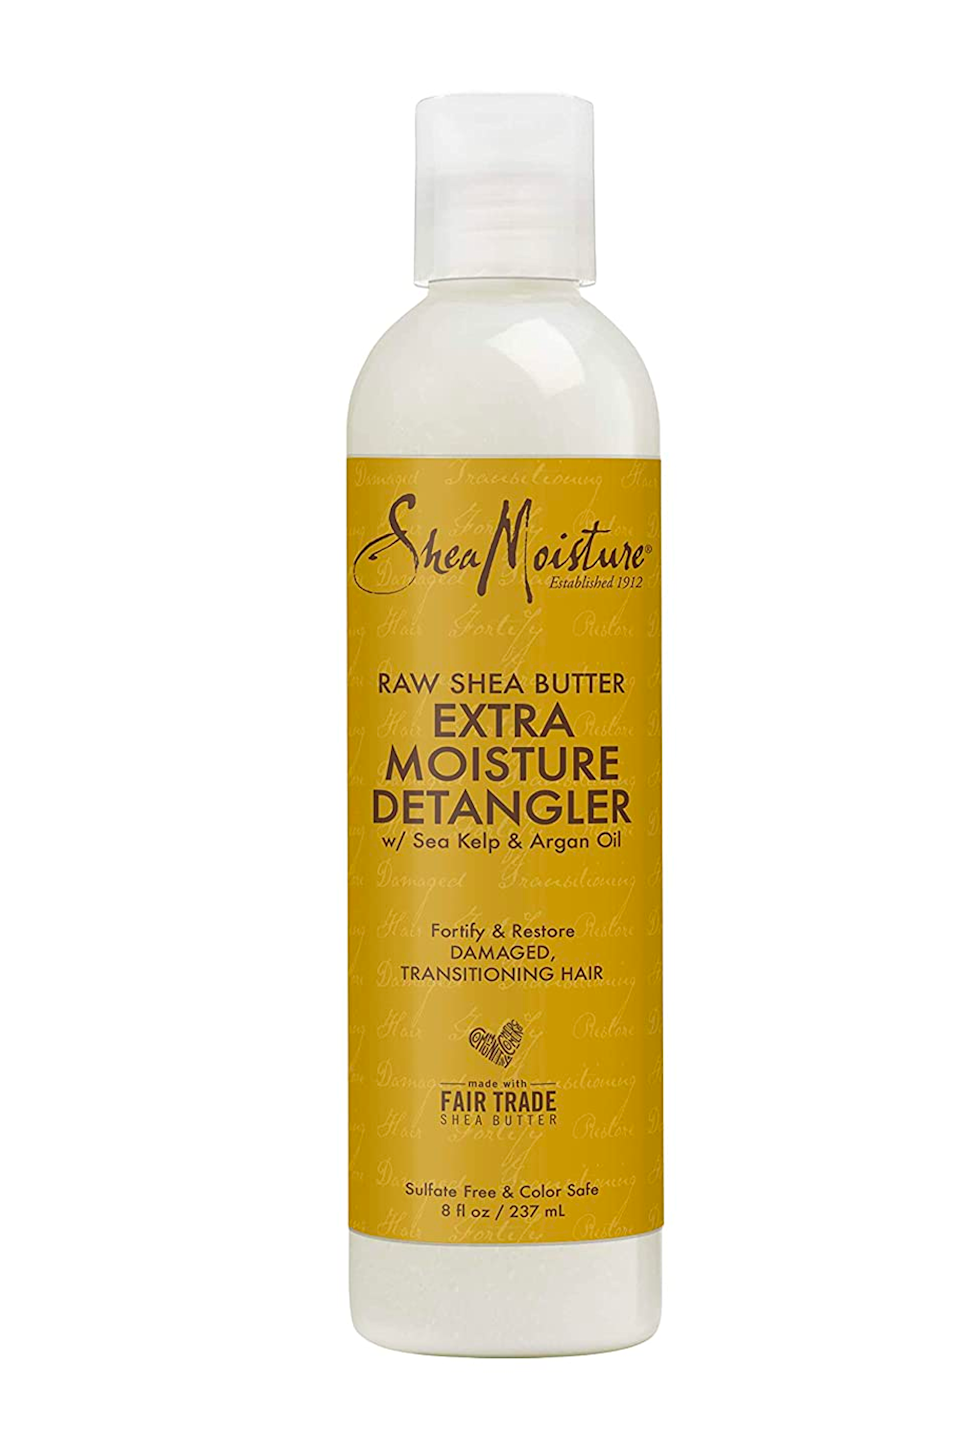 """<p><strong>SHEA MOISTURE</strong></p><p>amazon.com</p><p><strong>$10.49</strong></p><p><a href=""""https://www.amazon.com/dp/B07NQLWYZJ?tag=syn-yahoo-20&ascsubtag=%5Bartid%7C10049.g.36027428%5Bsrc%7Cyahoo-us"""" rel=""""nofollow noopener"""" target=""""_blank"""" data-ylk=""""slk:Shop Now"""" class=""""link rapid-noclick-resp"""">Shop Now</a></p><p>If you're on the hunt for an affordable detangler, you'll love this drugstore option from SheaMoisture. The hero ingredient is rich and creamy shea butter, which <strong>gives your hair plenty of slip and shine for easy detangling</strong> (yes, <em>even</em> if you're working with <a href=""""https://www.cosmopolitan.com/style-beauty/beauty/g20874938/best-shampoo-dry-damaged-hair/"""" rel=""""nofollow noopener"""" target=""""_blank"""" data-ylk=""""slk:damaged"""" class=""""link rapid-noclick-resp"""">damaged</a> or dry curls). Comb it through your damp hair before or after cleansing and you'll get the hype.</p>"""